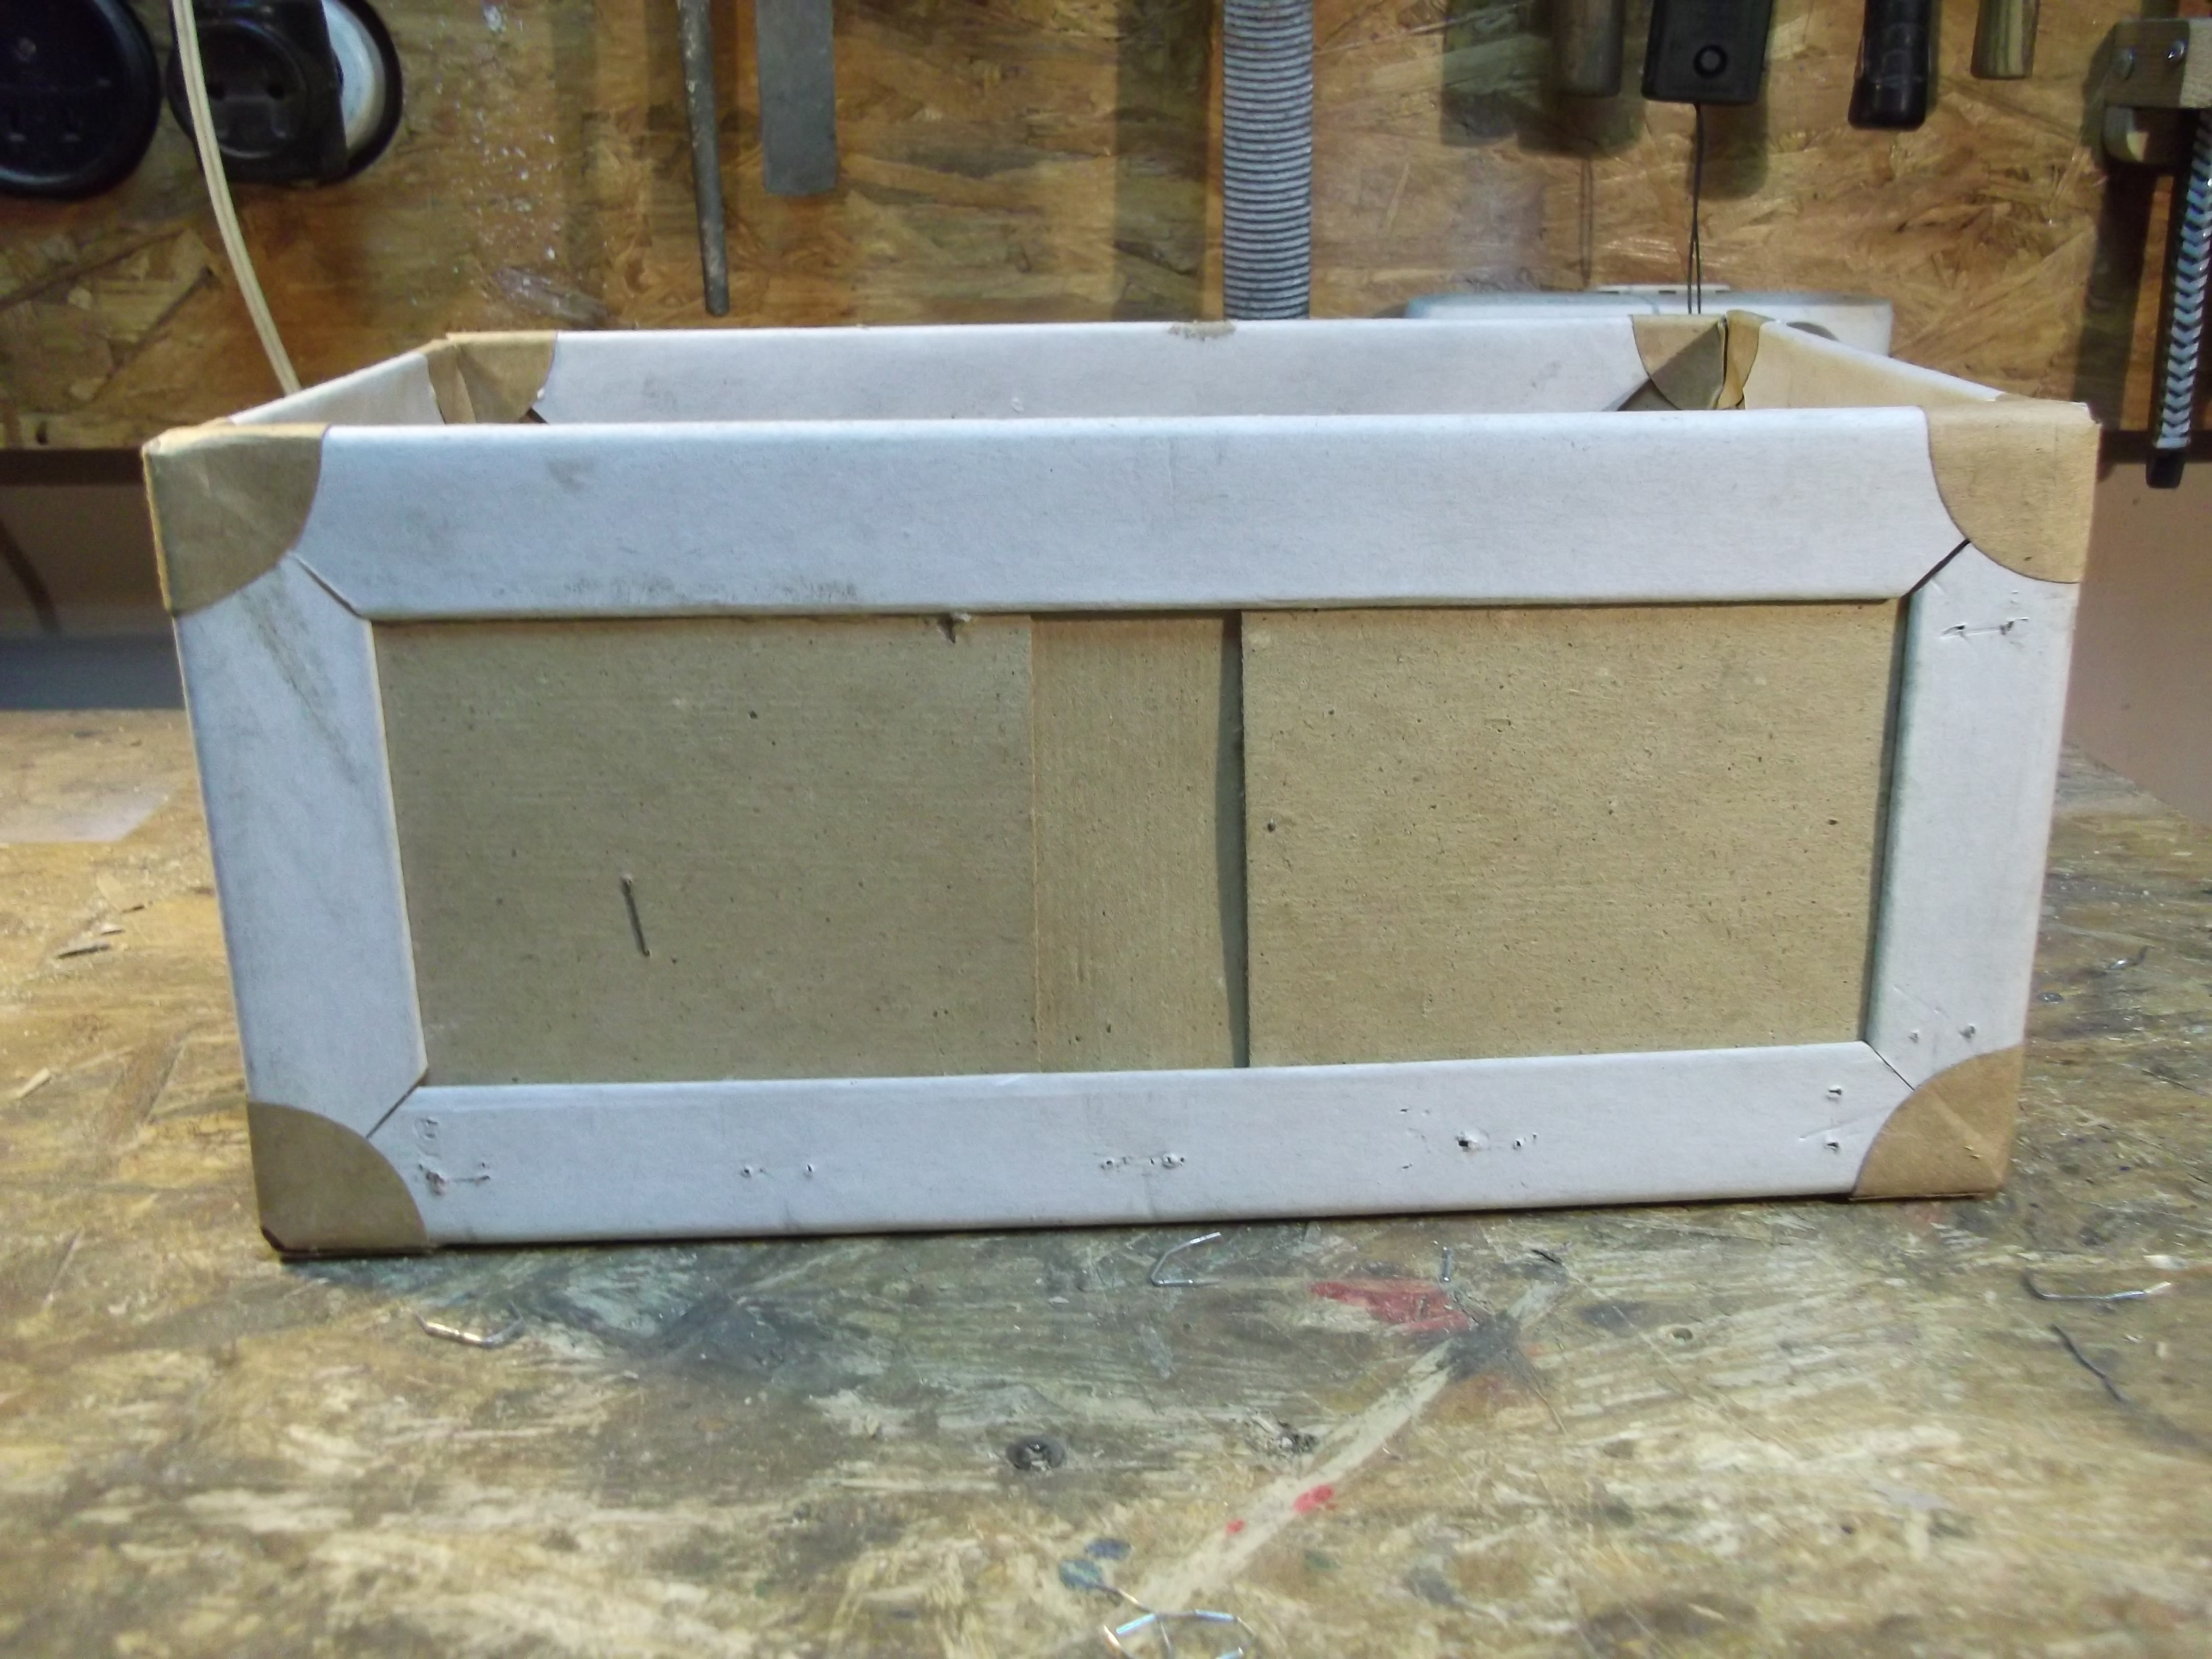 Picture of Fixing/Making/Reinforcing Boxes With Packaging Waste